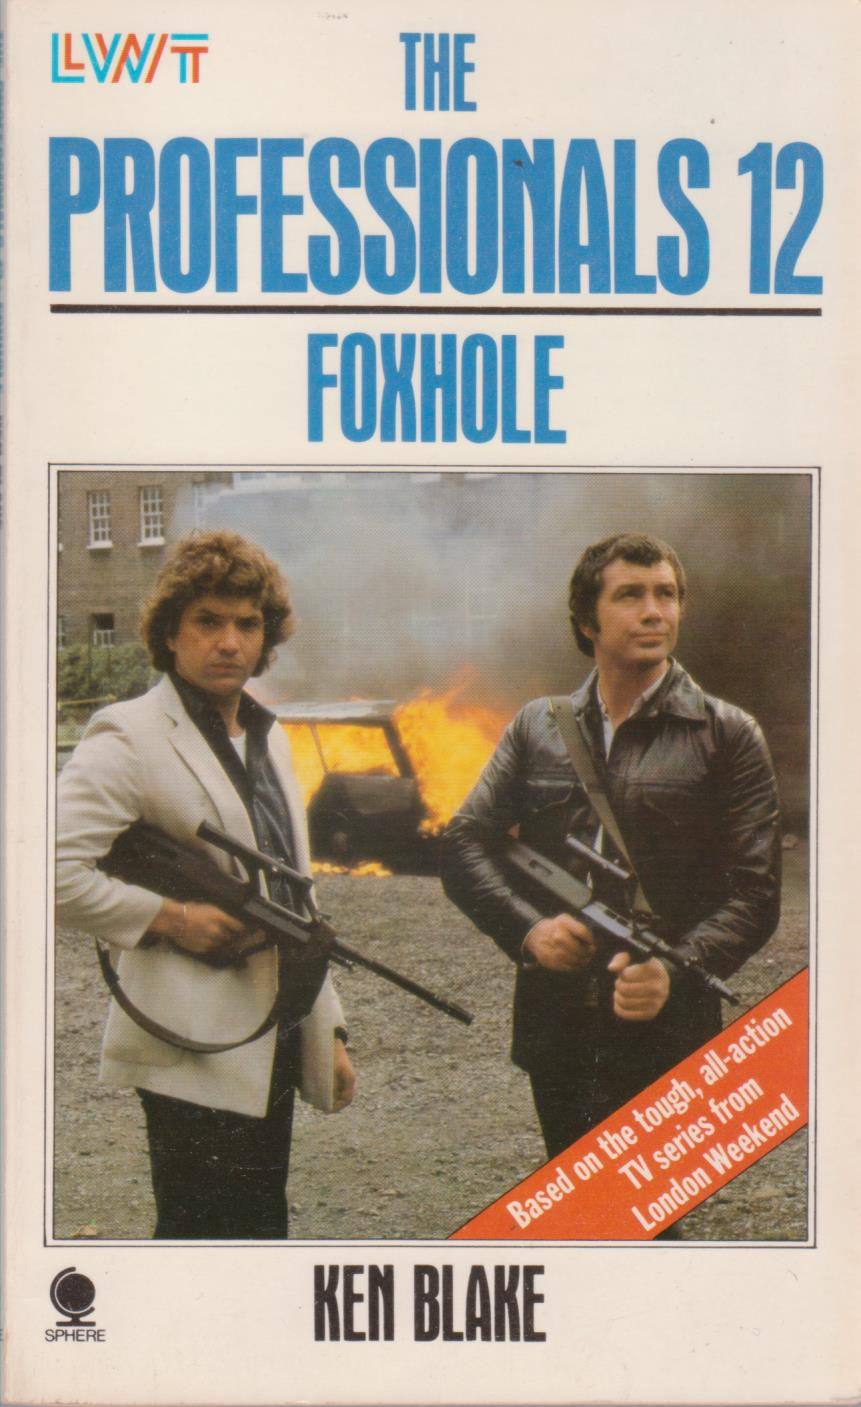 cover image of The Professionals; Foxhole for sale in New Zealand